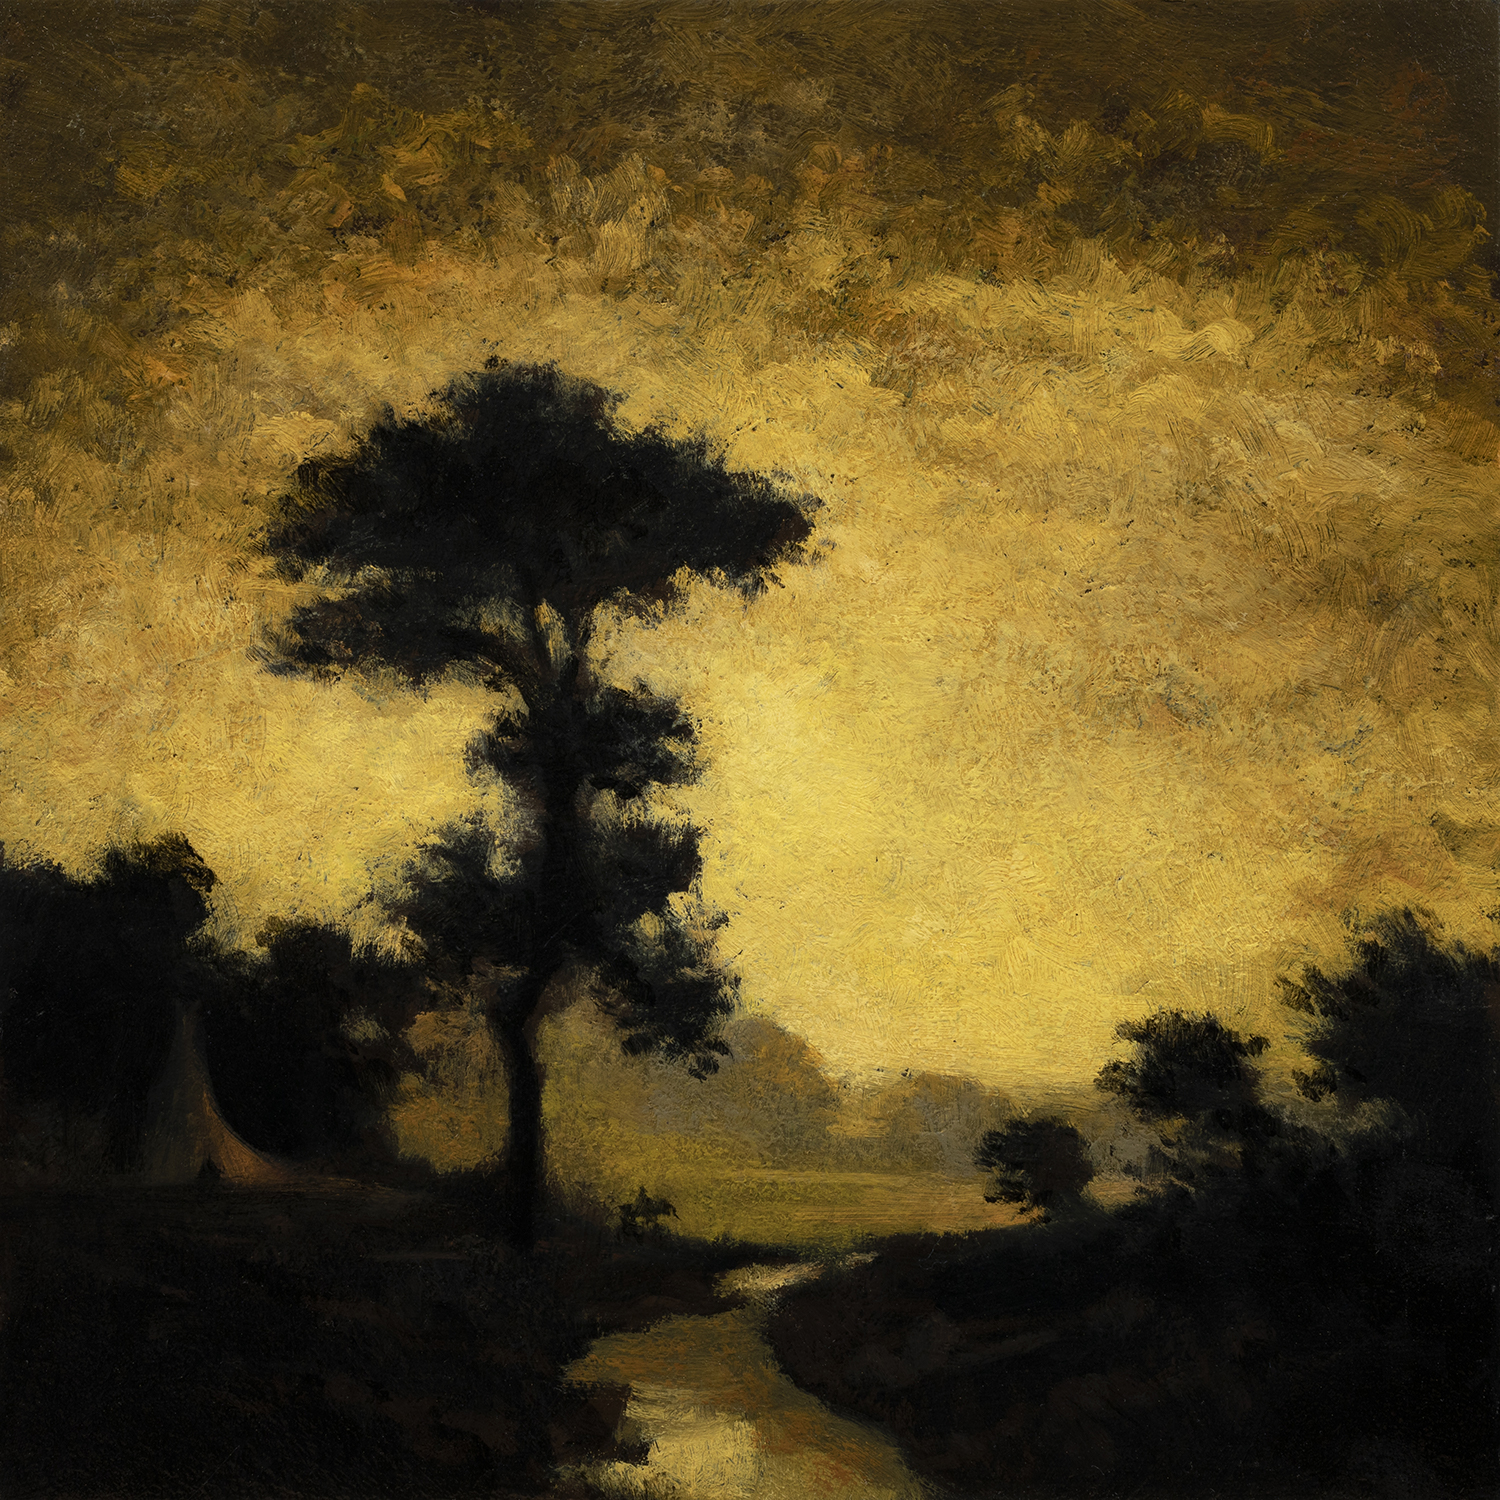 Study after Ralph Albert Blakelock Moonlight by M Francis McCarthy - 8x8 Oil on Wood Panel